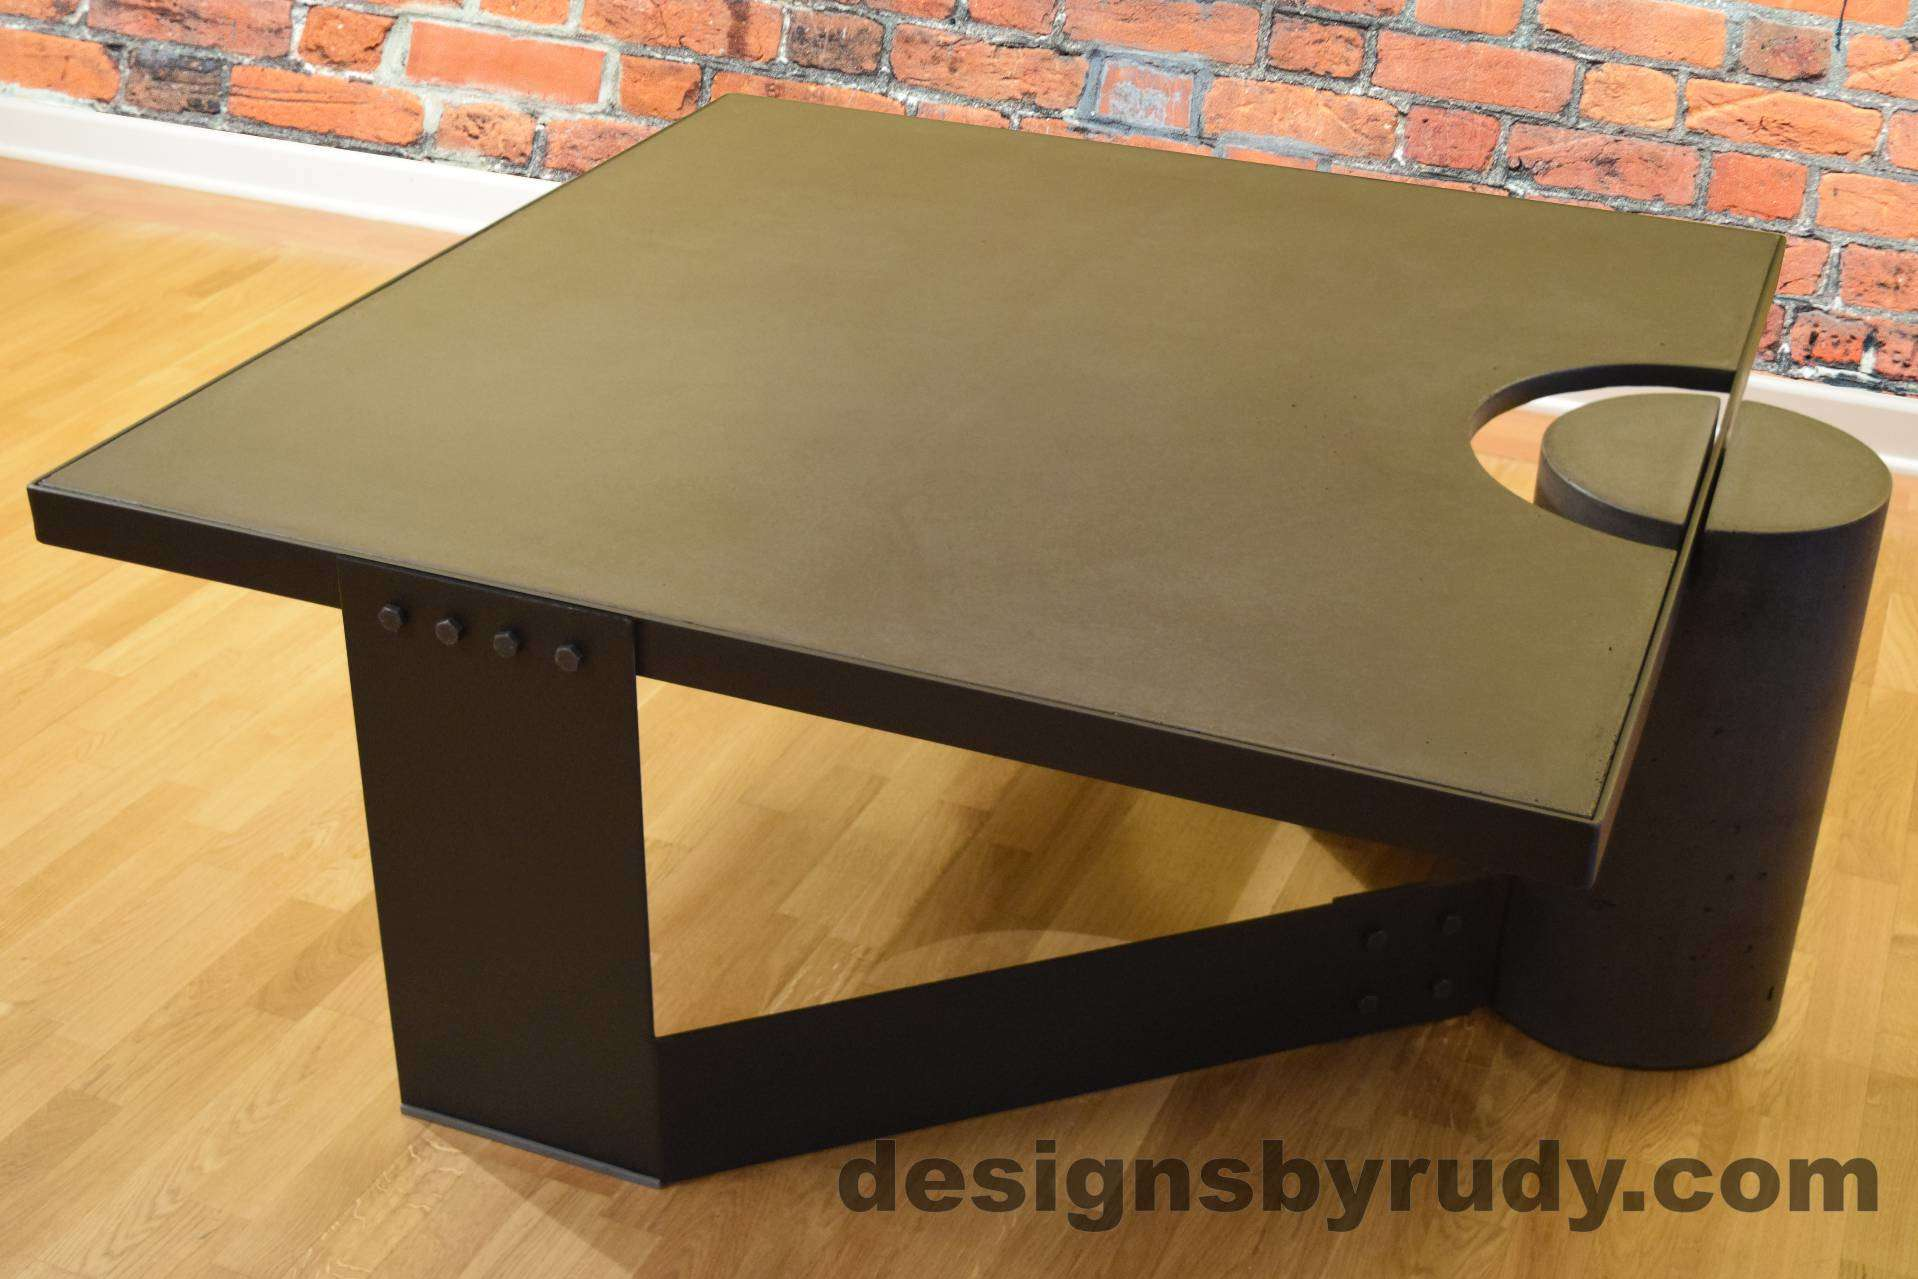 DR30 Charcoal Concrete Coffee Table Black Powder Coated Frame Gallery